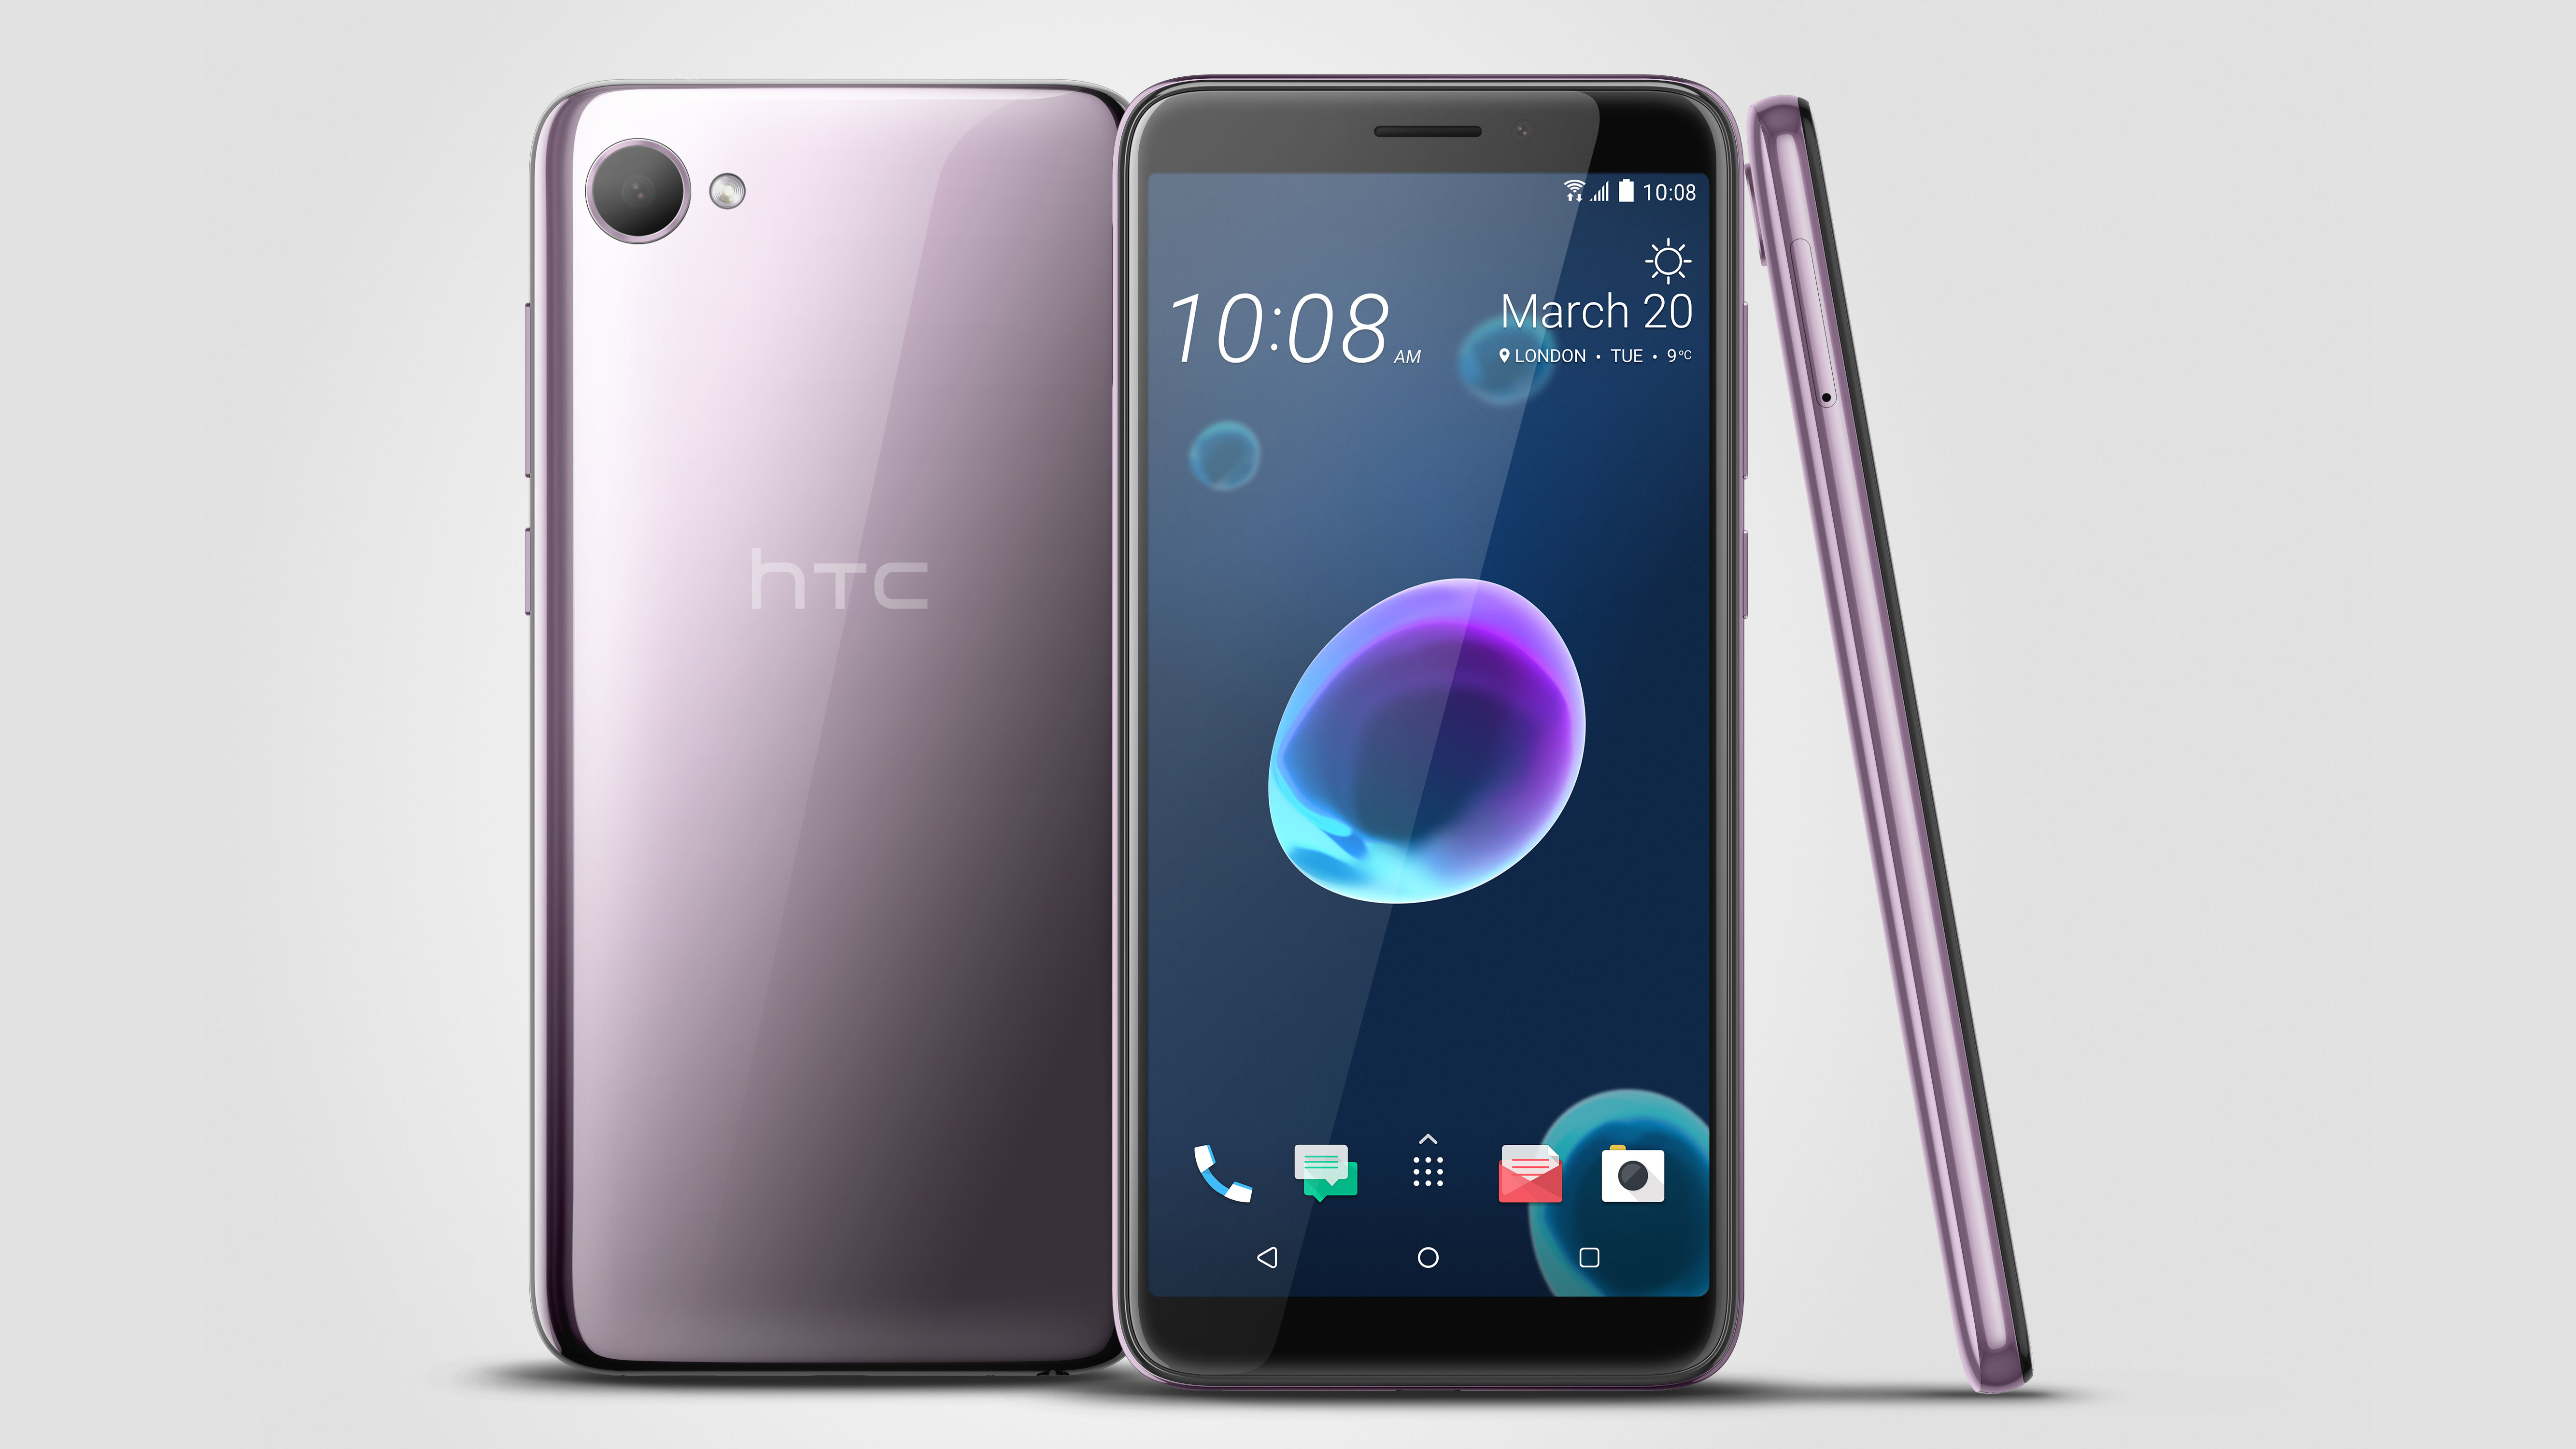 Promo Oppo 7a 16gb Putih Termurah 2018 Find Ram 2gb Gareth Beavis Mobiles365 We Dont Yet Know What The Htc Desire 12